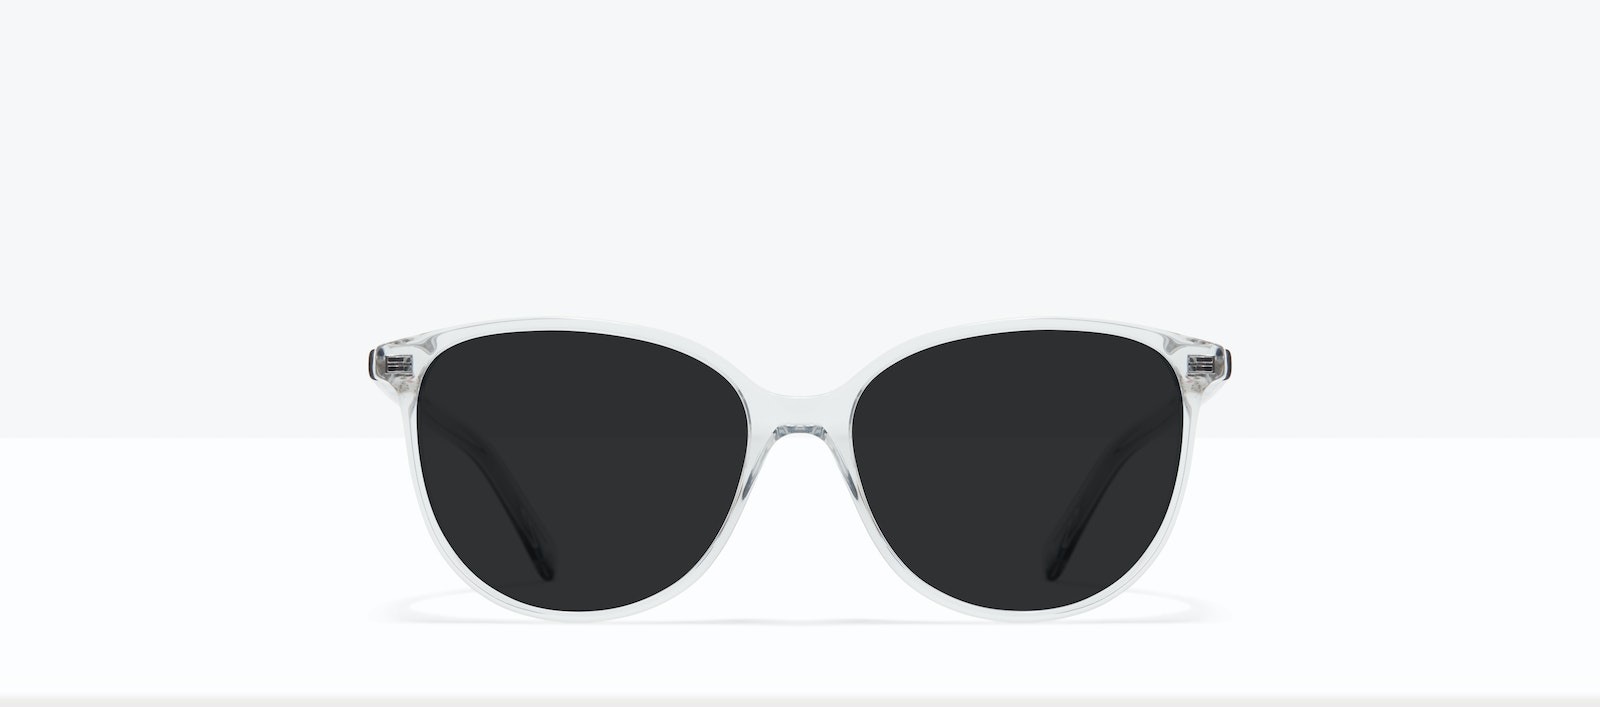 Affordable Fashion Glasses Cat Eye Sunglasses Women Imagine M Taupe Front